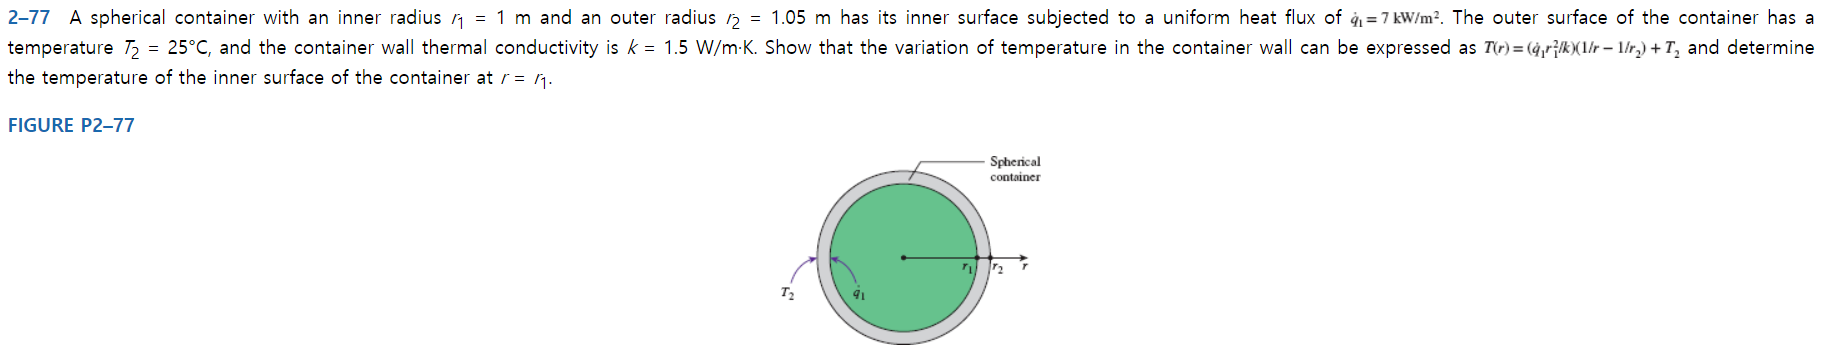 = 1.05 m has its inner surface subjected to a uniform heat flux of q1=7 kW/m2. The outer surface of the container has a 2-77 A spherical container with an inner radius n = 1 m and an outer radius 25°C, and the container wall thermal conductivity is k 1.5 W/m K. Show that the variation of temperature in the container wall can be expressed as T(r)= (4,r^k(1r 1/r.) + T2 and determine temperature T2 the temperature of the inner surface of the container at r = ^ FIGURE P2-77 Spherical container T2